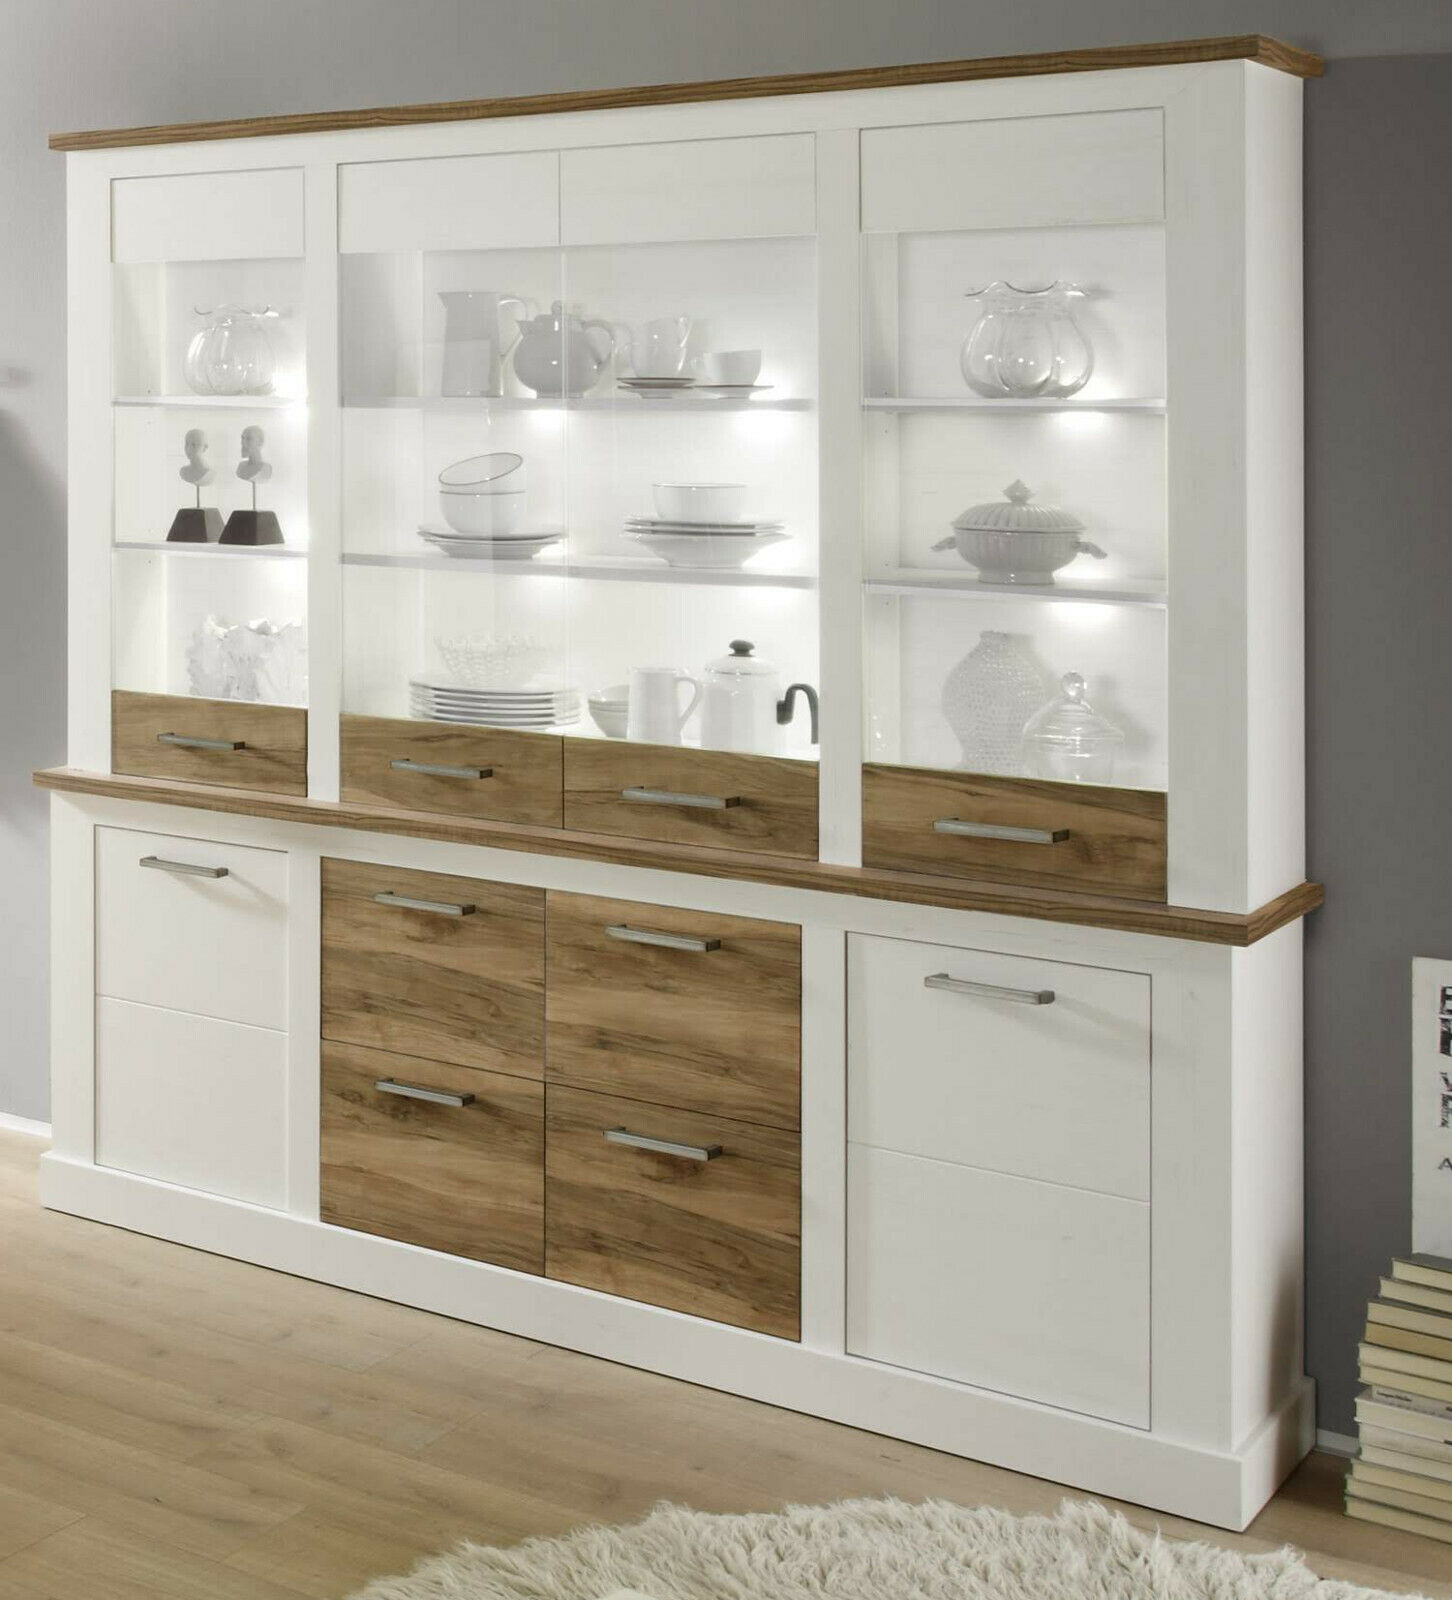 buffet schrank weiss pinie nussbaum anrichte landhaus highboard k che toronto eur 674 99. Black Bedroom Furniture Sets. Home Design Ideas